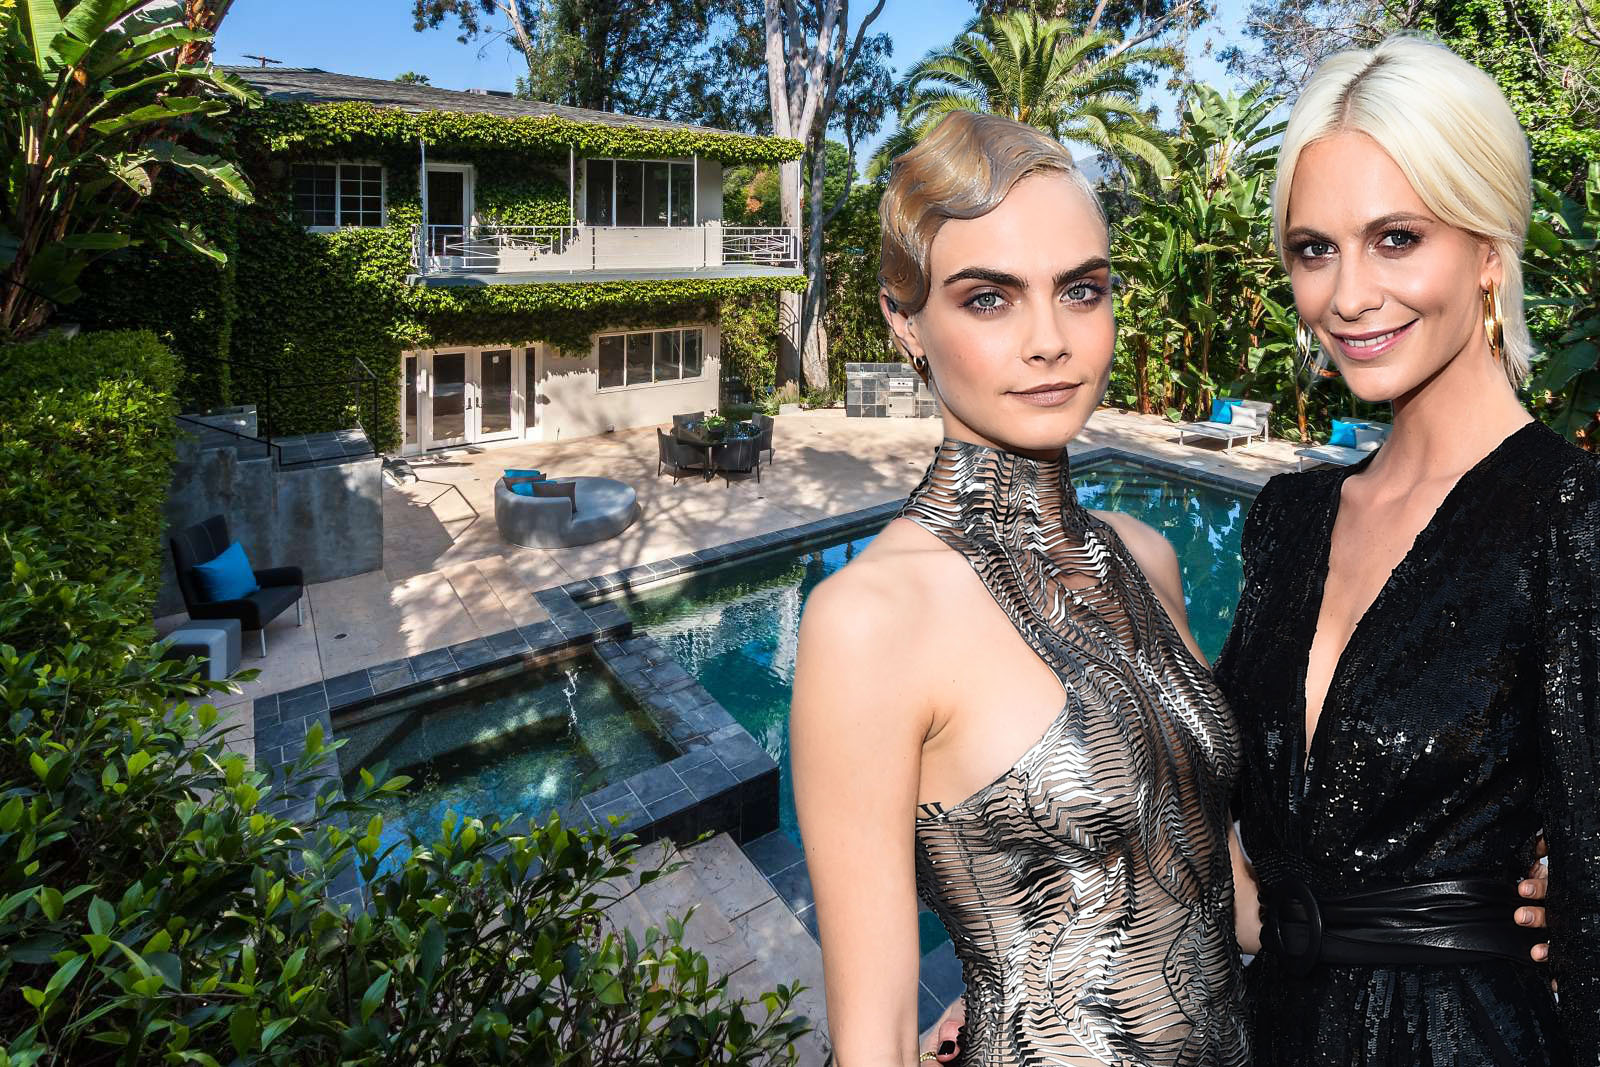 """The sisters are reportedly behind an LLC that paid just over $2 million for the vine-covered Hollywood Hills home, for which """"Dallas Buyers Club"""" star Leto paid $1.6 million for in 2006."""